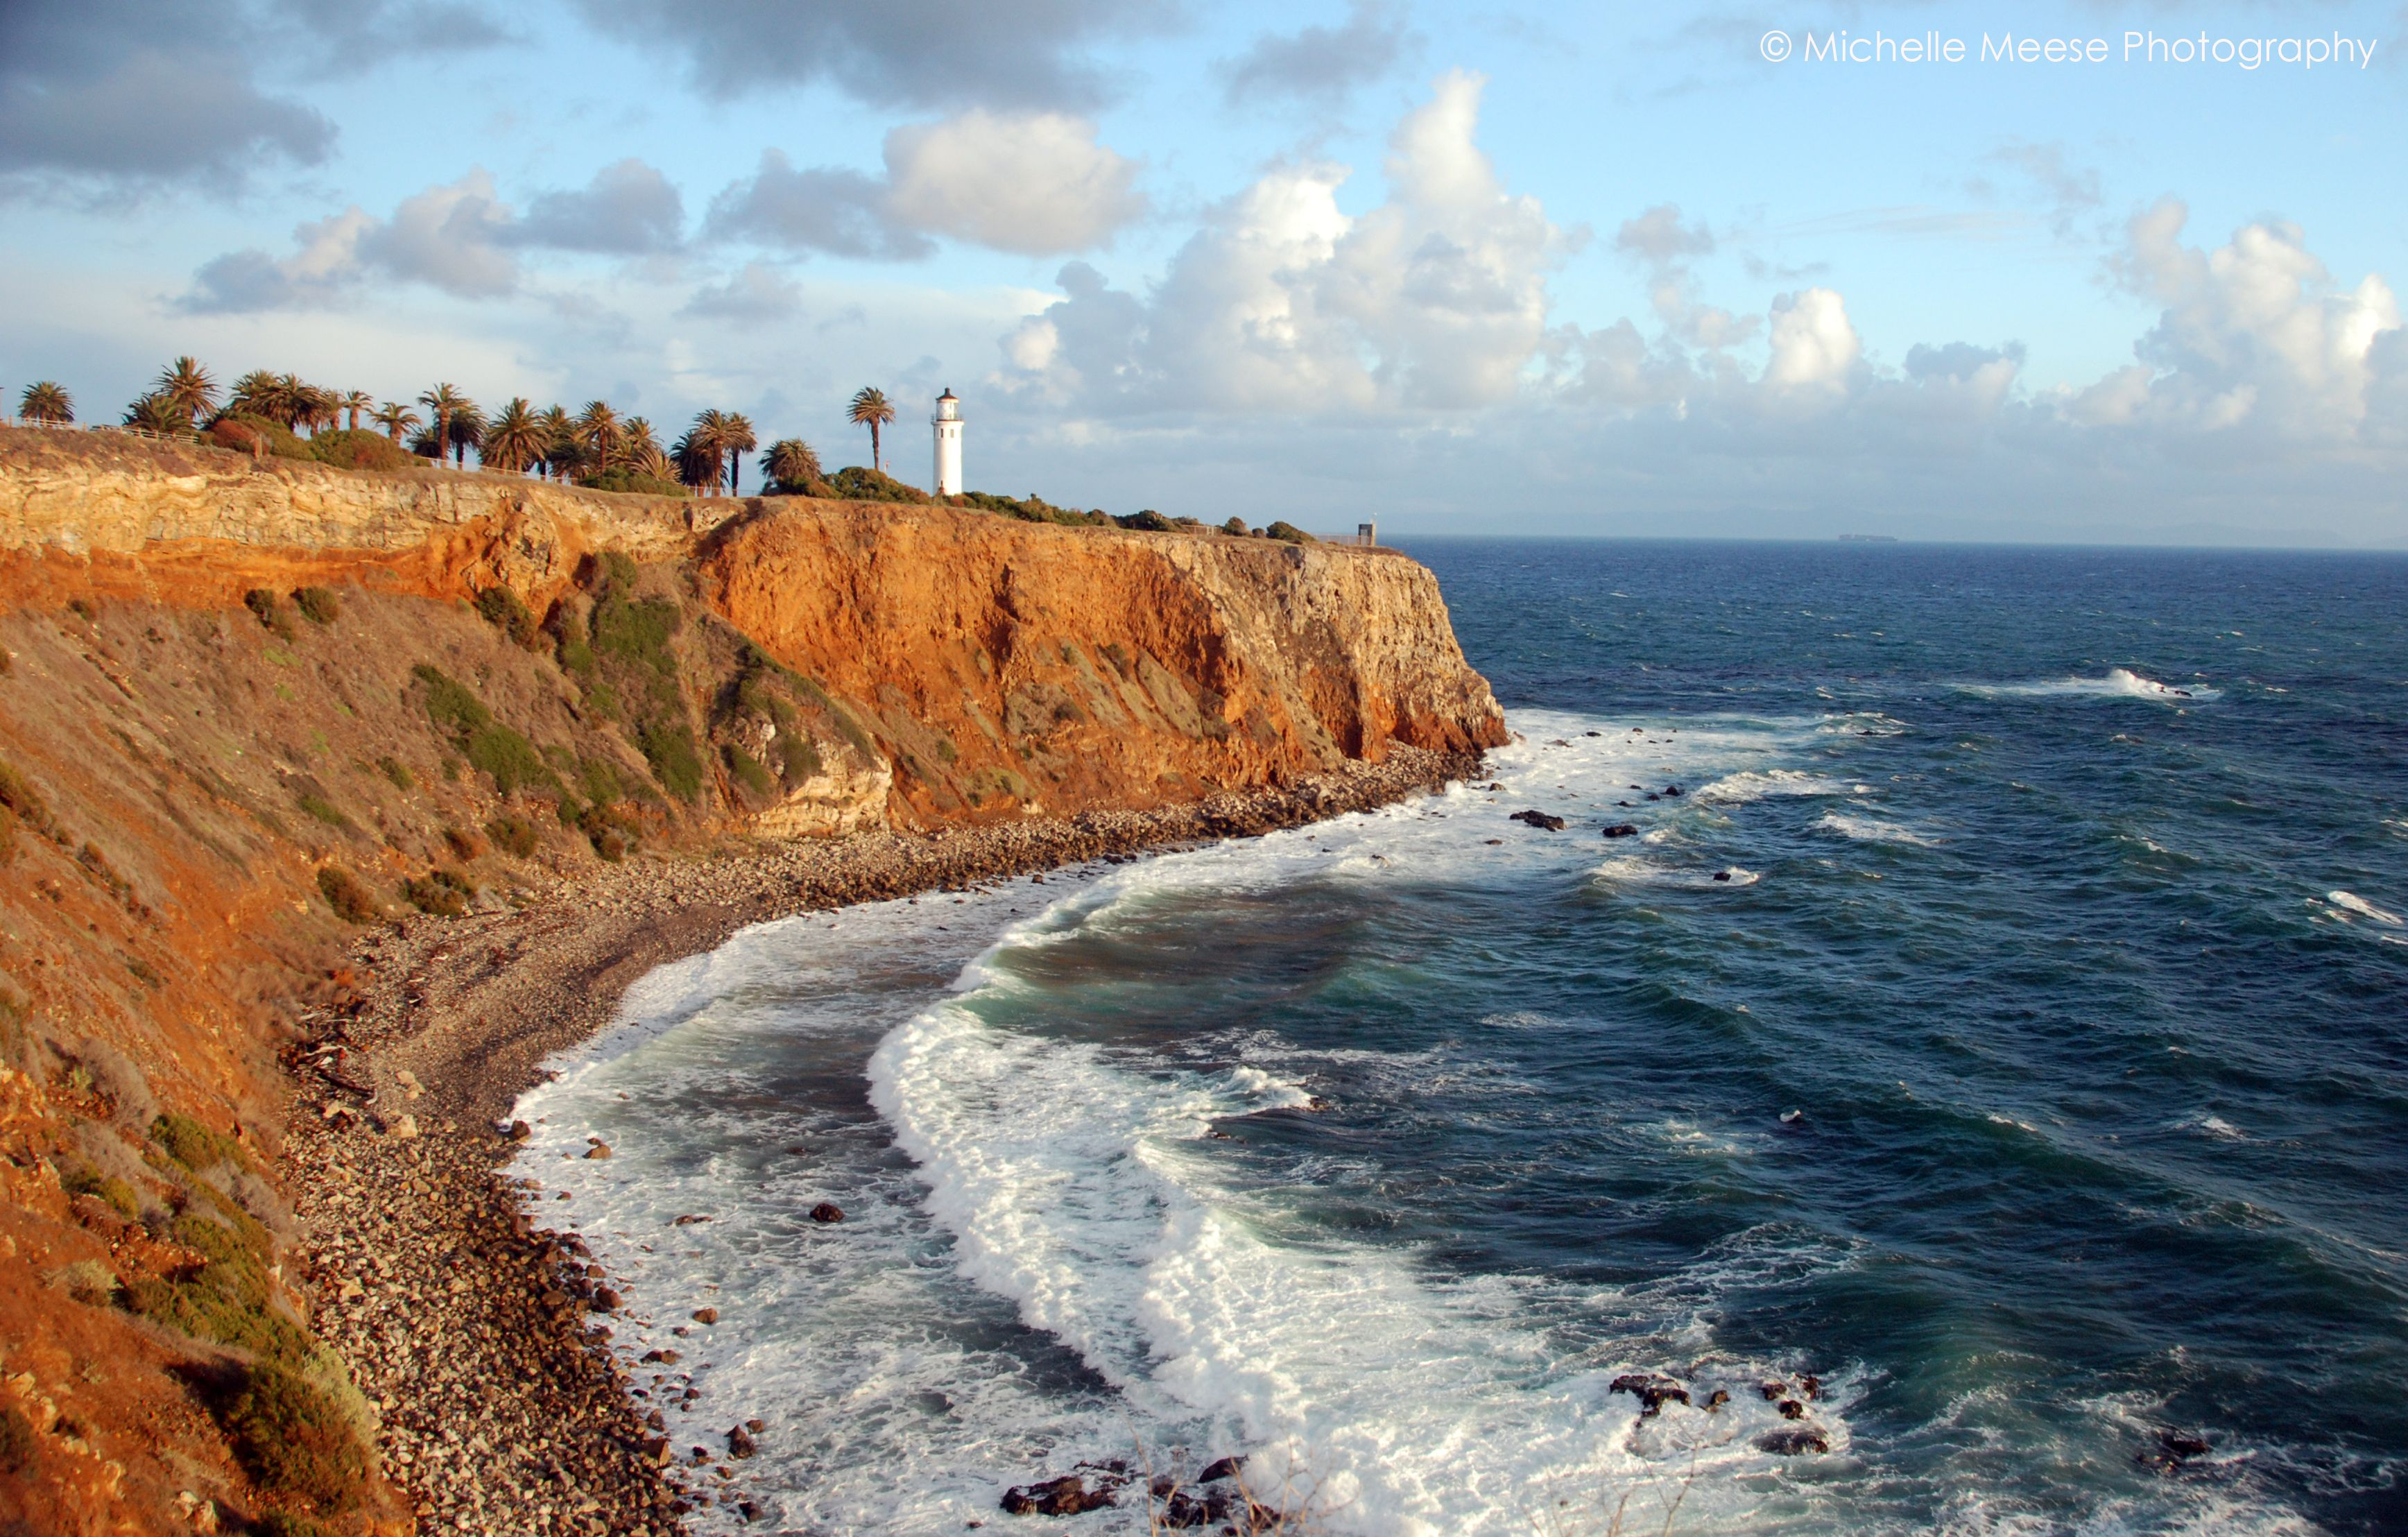 Point vicente lighthouse rancho palos verdes ca handmade greeting point vicente lighthouse rancho palos verdes ca handmade greeting cards and prints available kristyandbryce Choice Image